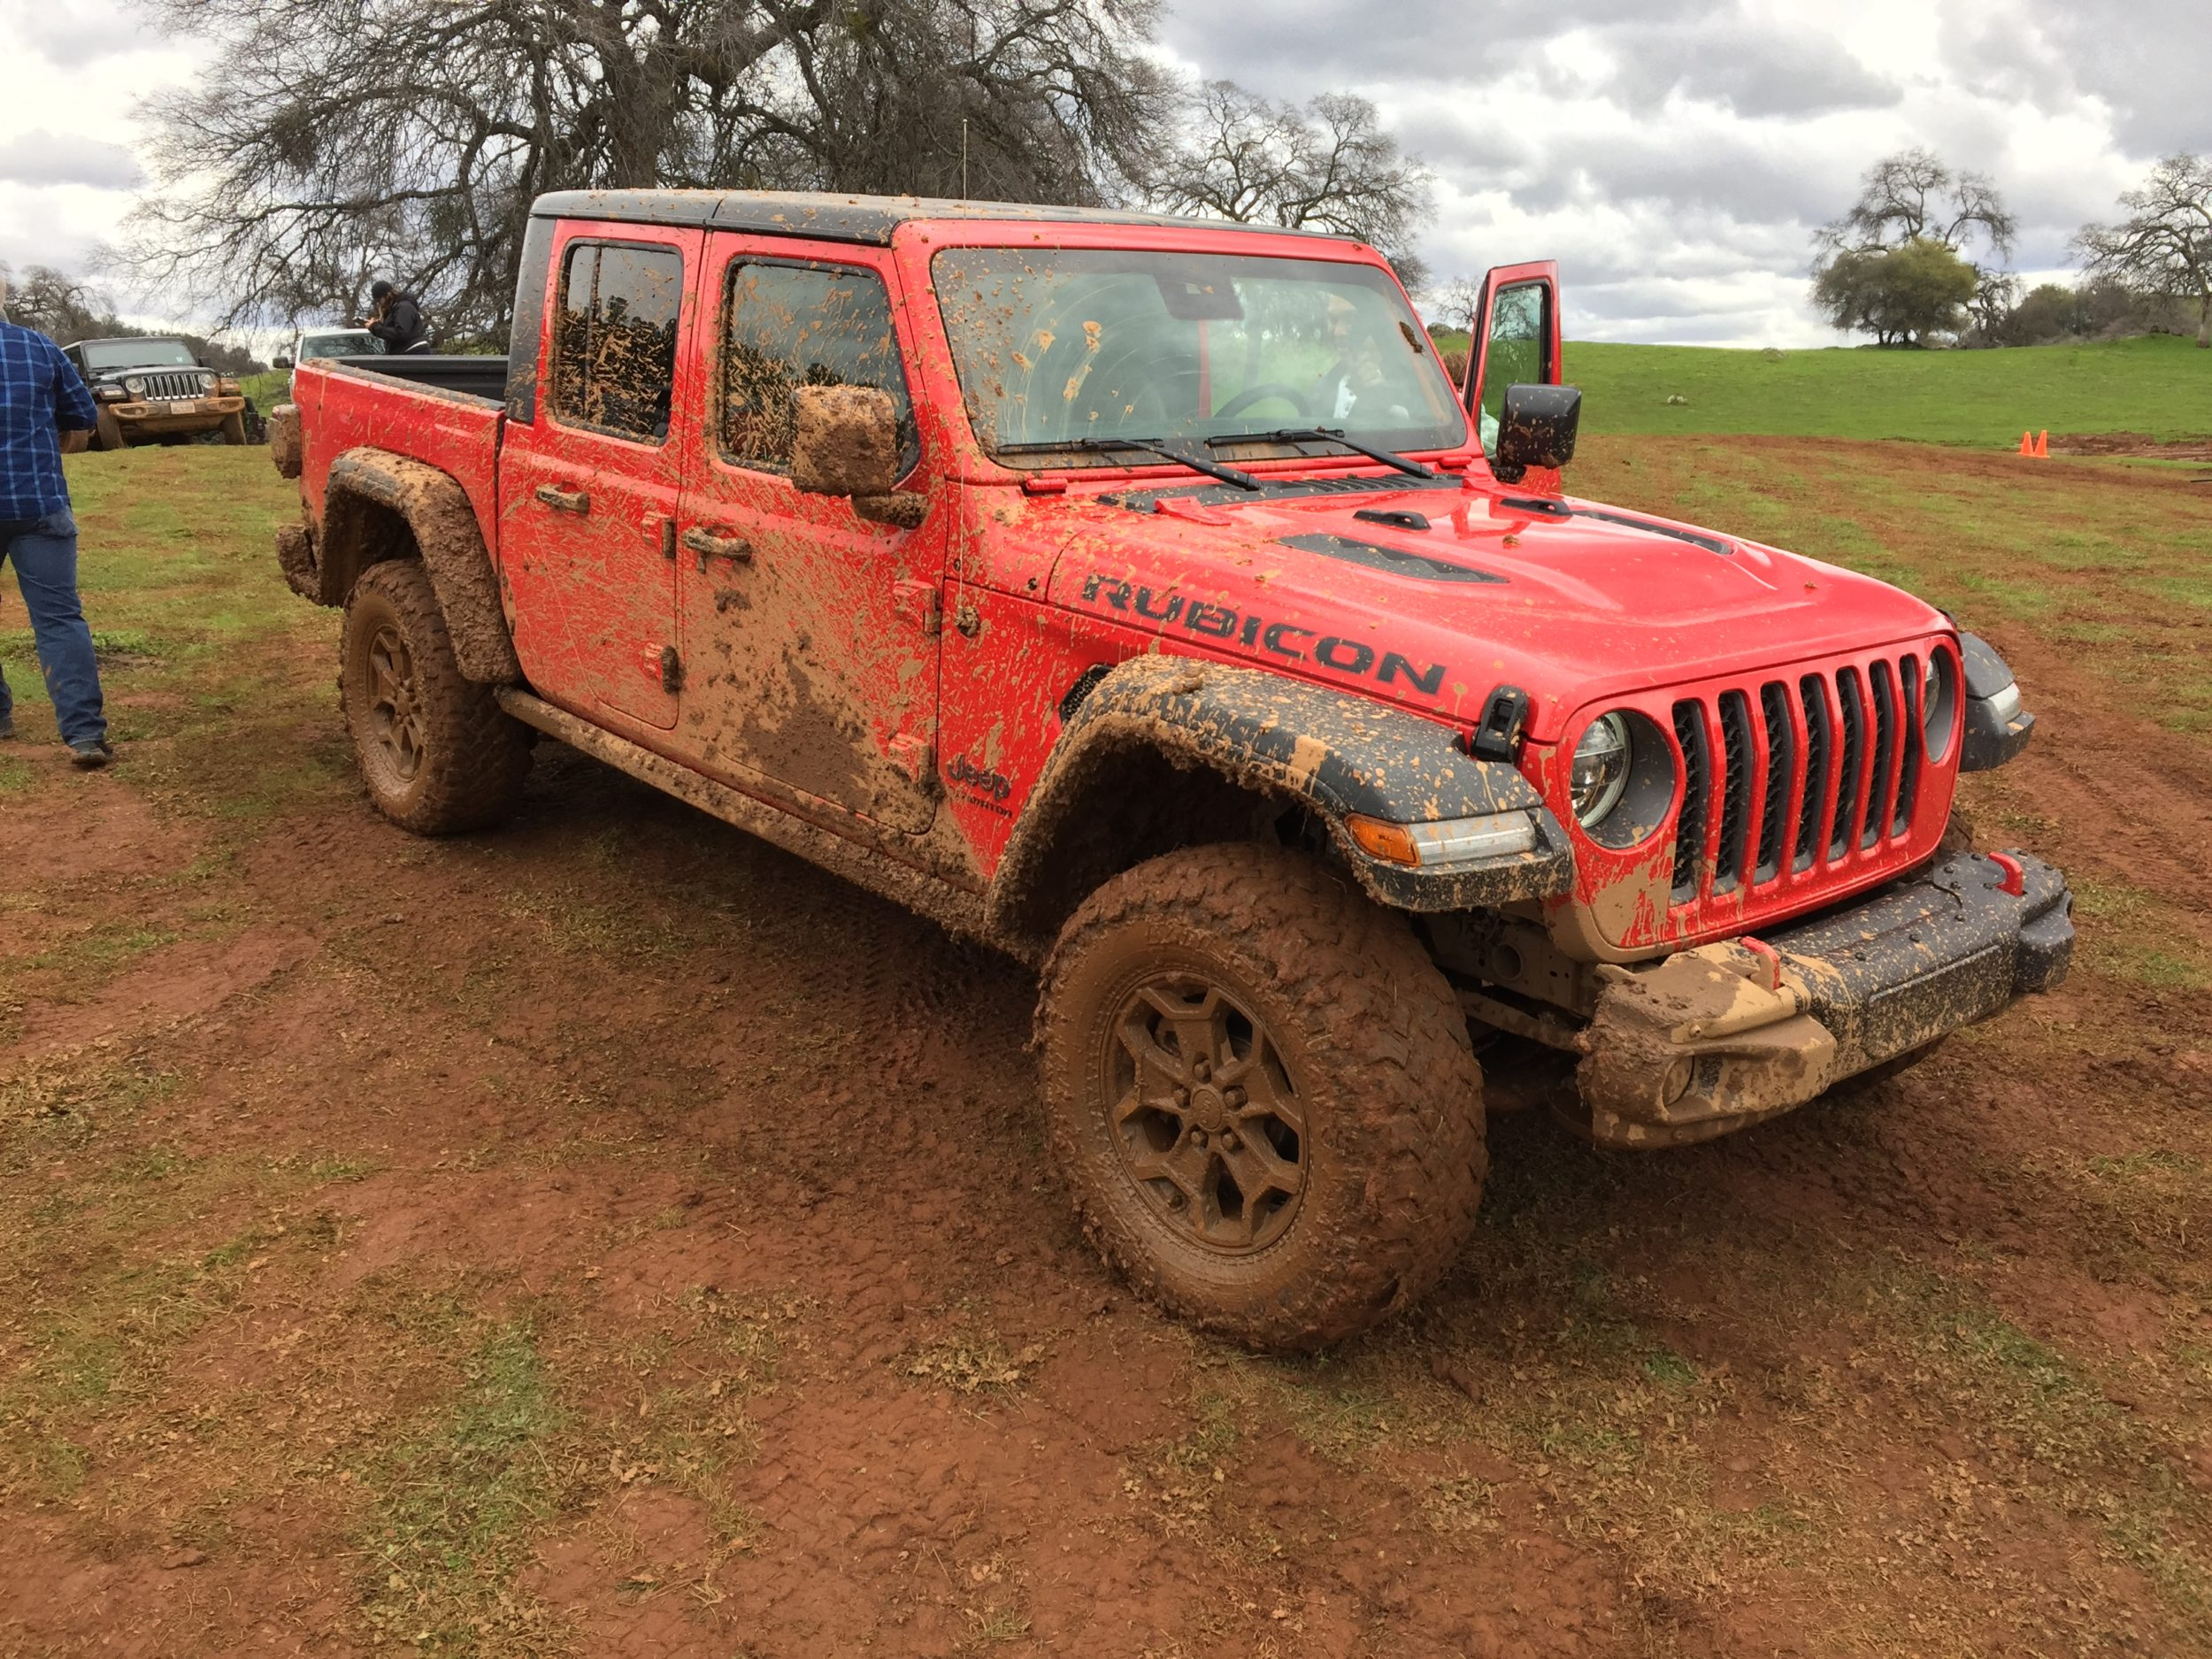 Jeep Gladiator Rubicon Mudder